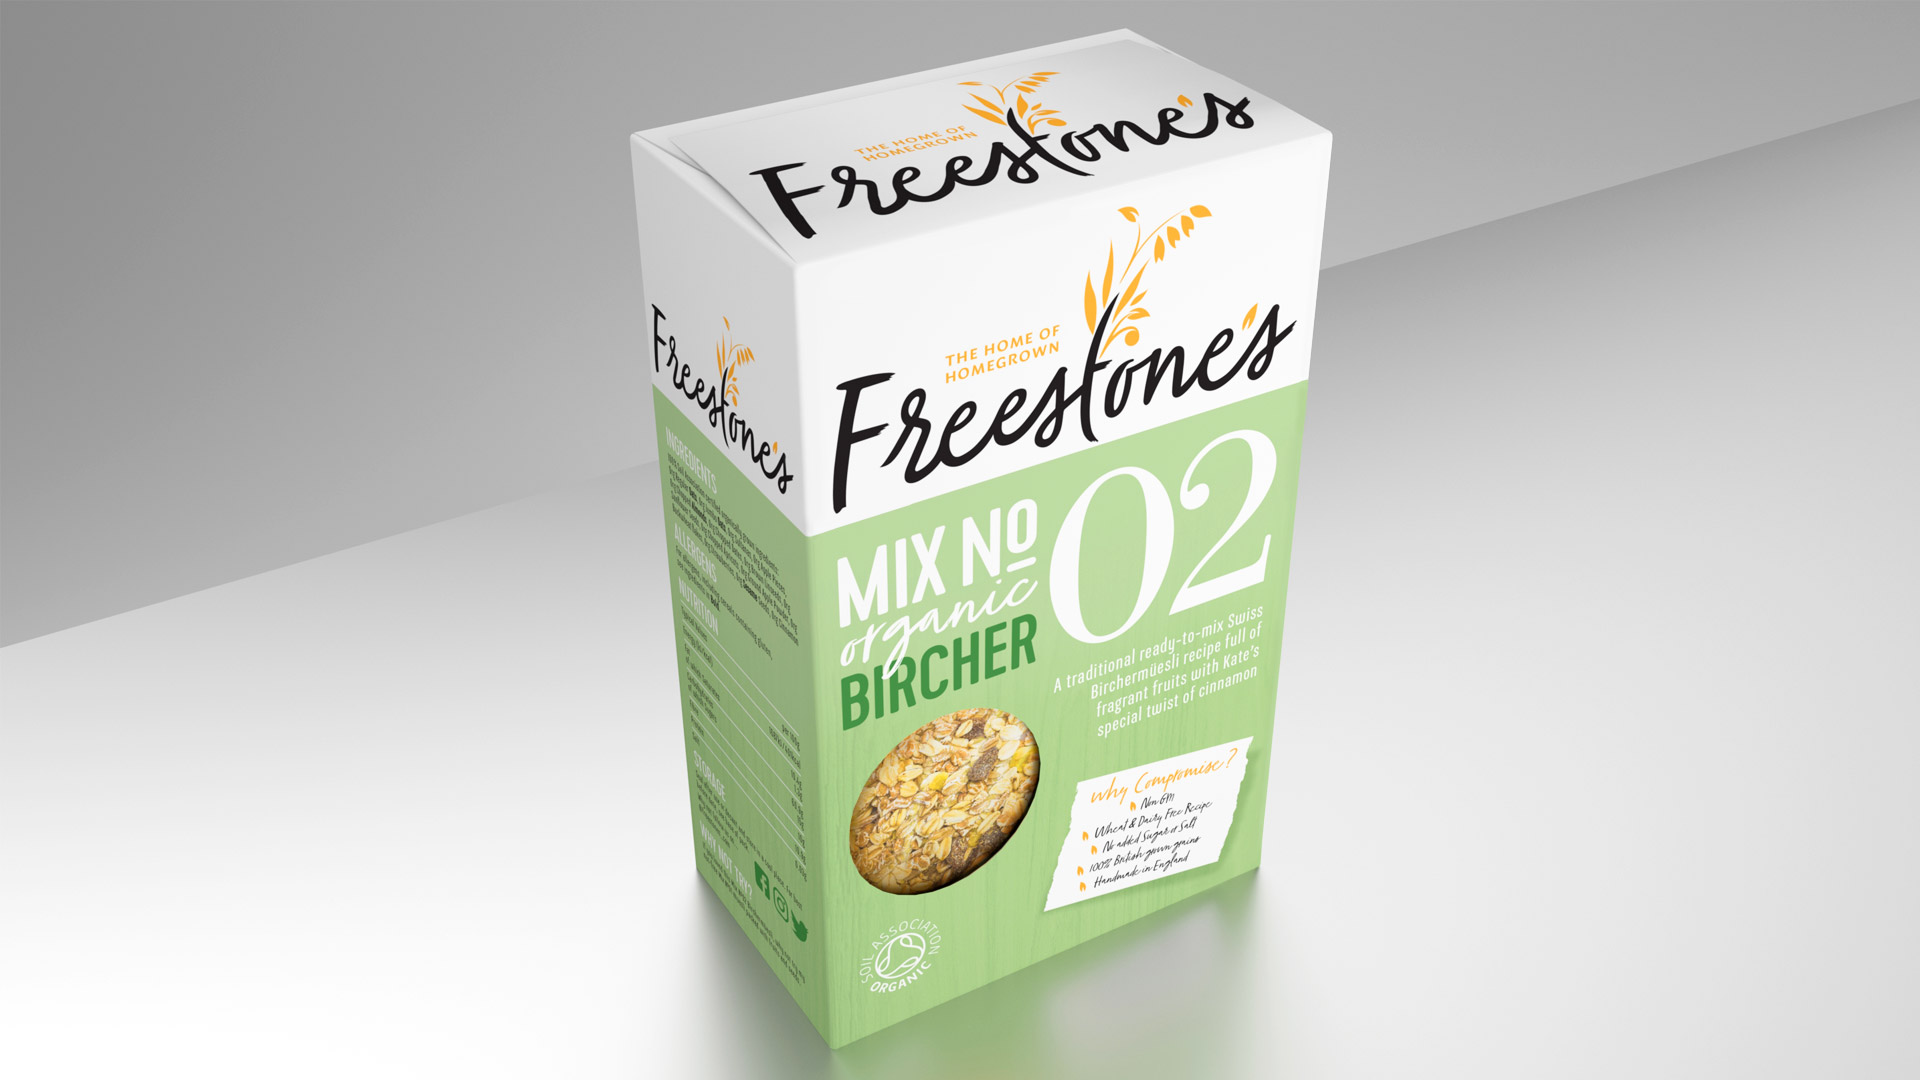 Freestones Mix No 2 Bircher Muesli - The home of homegrown